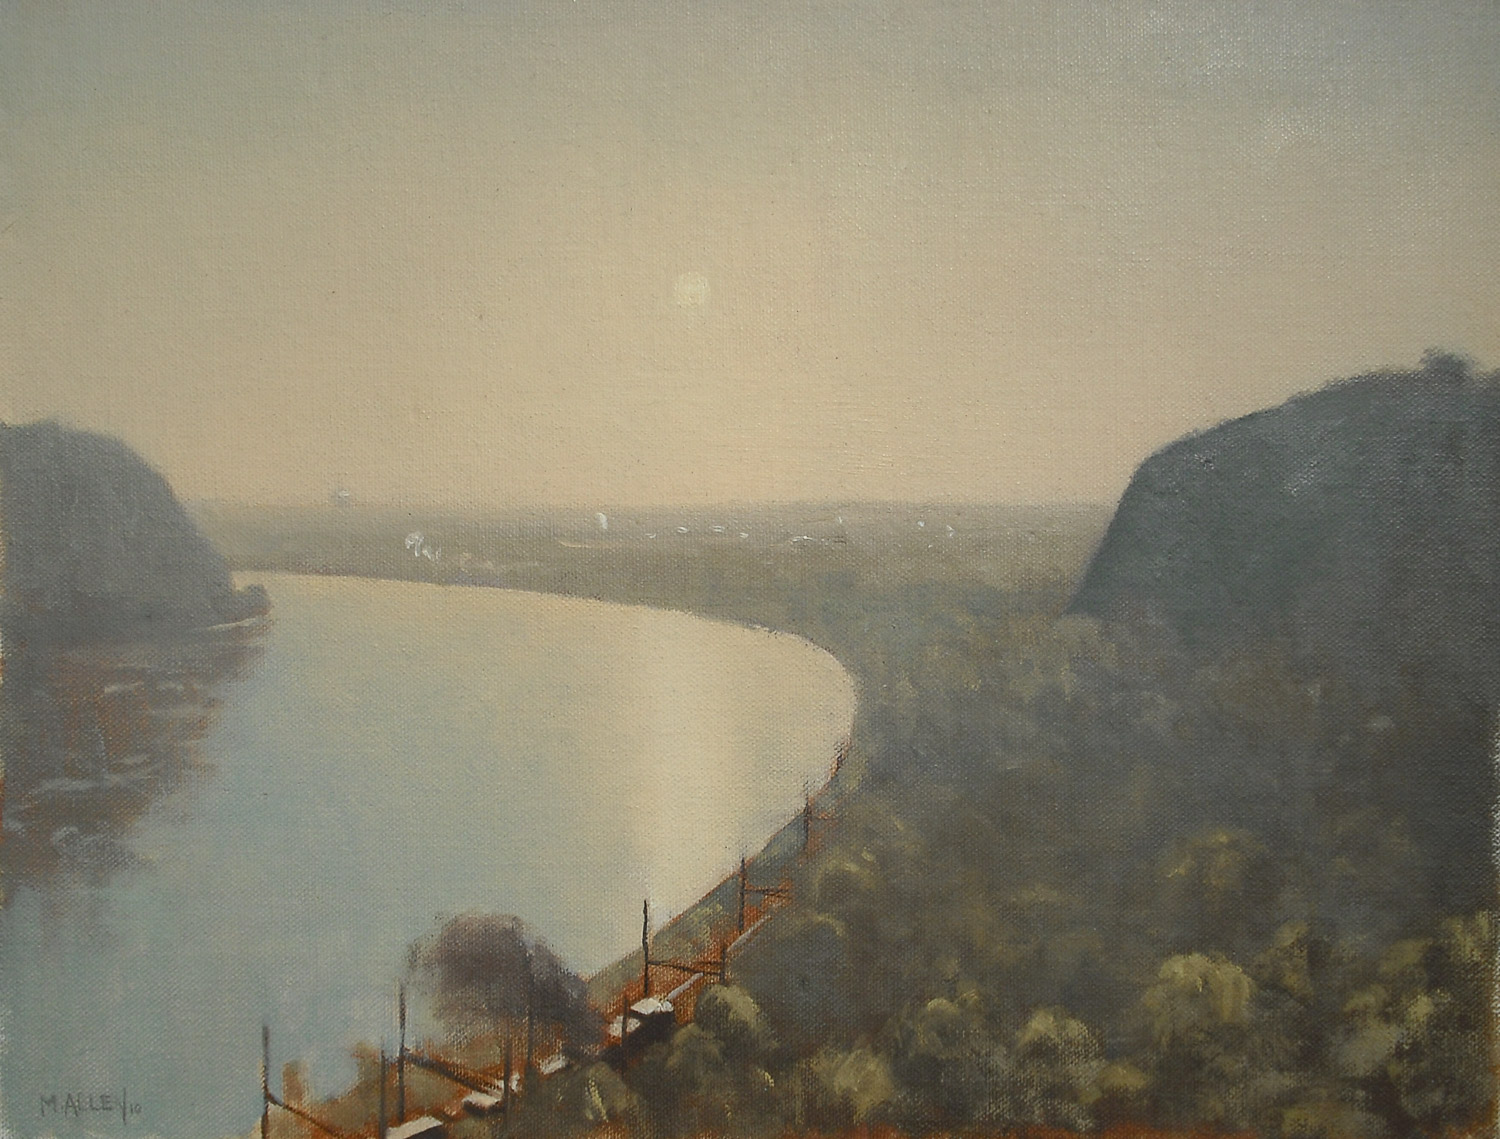 A Bend in the River, 2010